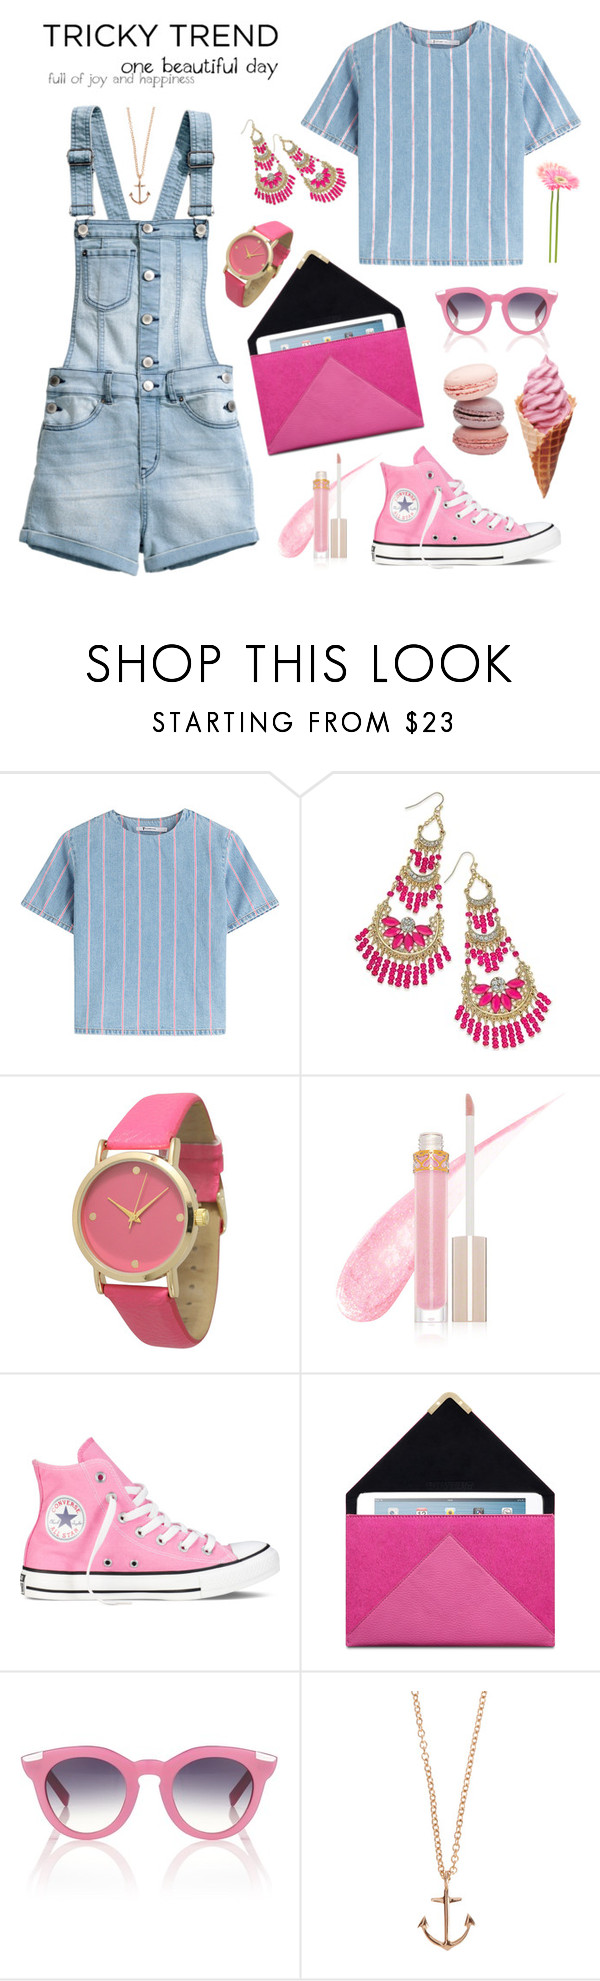 """""""Tricky Trend: Shortalls"""" by jasminerb ❤ liked on Polyvore featuring T By Alexander Wang, Thalia Sodi, Olivia Pratt, Stila, Converse, VIVETTA, Minor Obsessions, H&M, TrickyTrend and contest"""